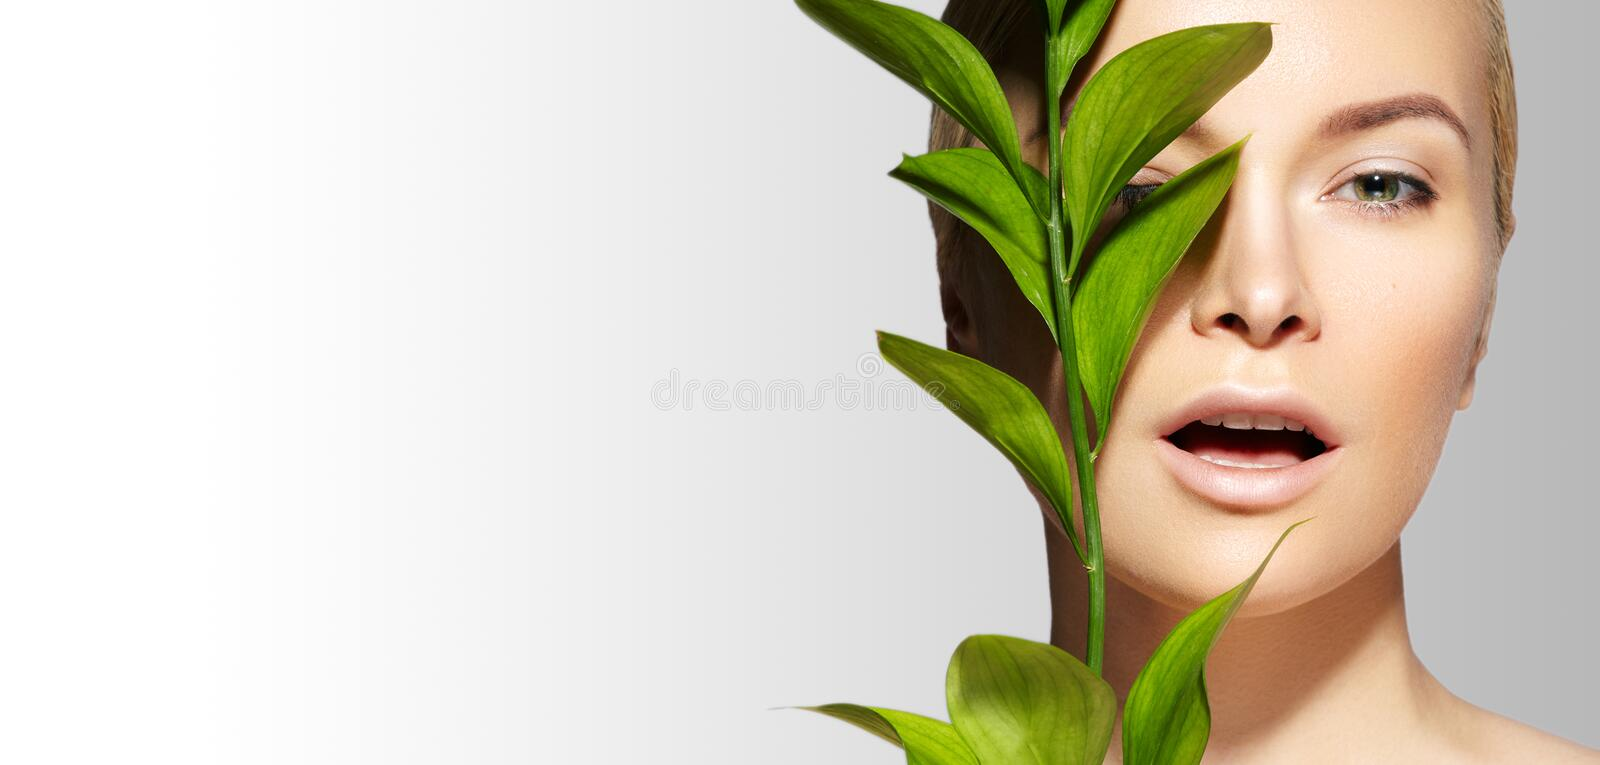 Beautiful Woman applies Organic Cosmetic. Spa and Wellness. Model with Clean Skin. Healthcare. Picture with Leaf stock photos